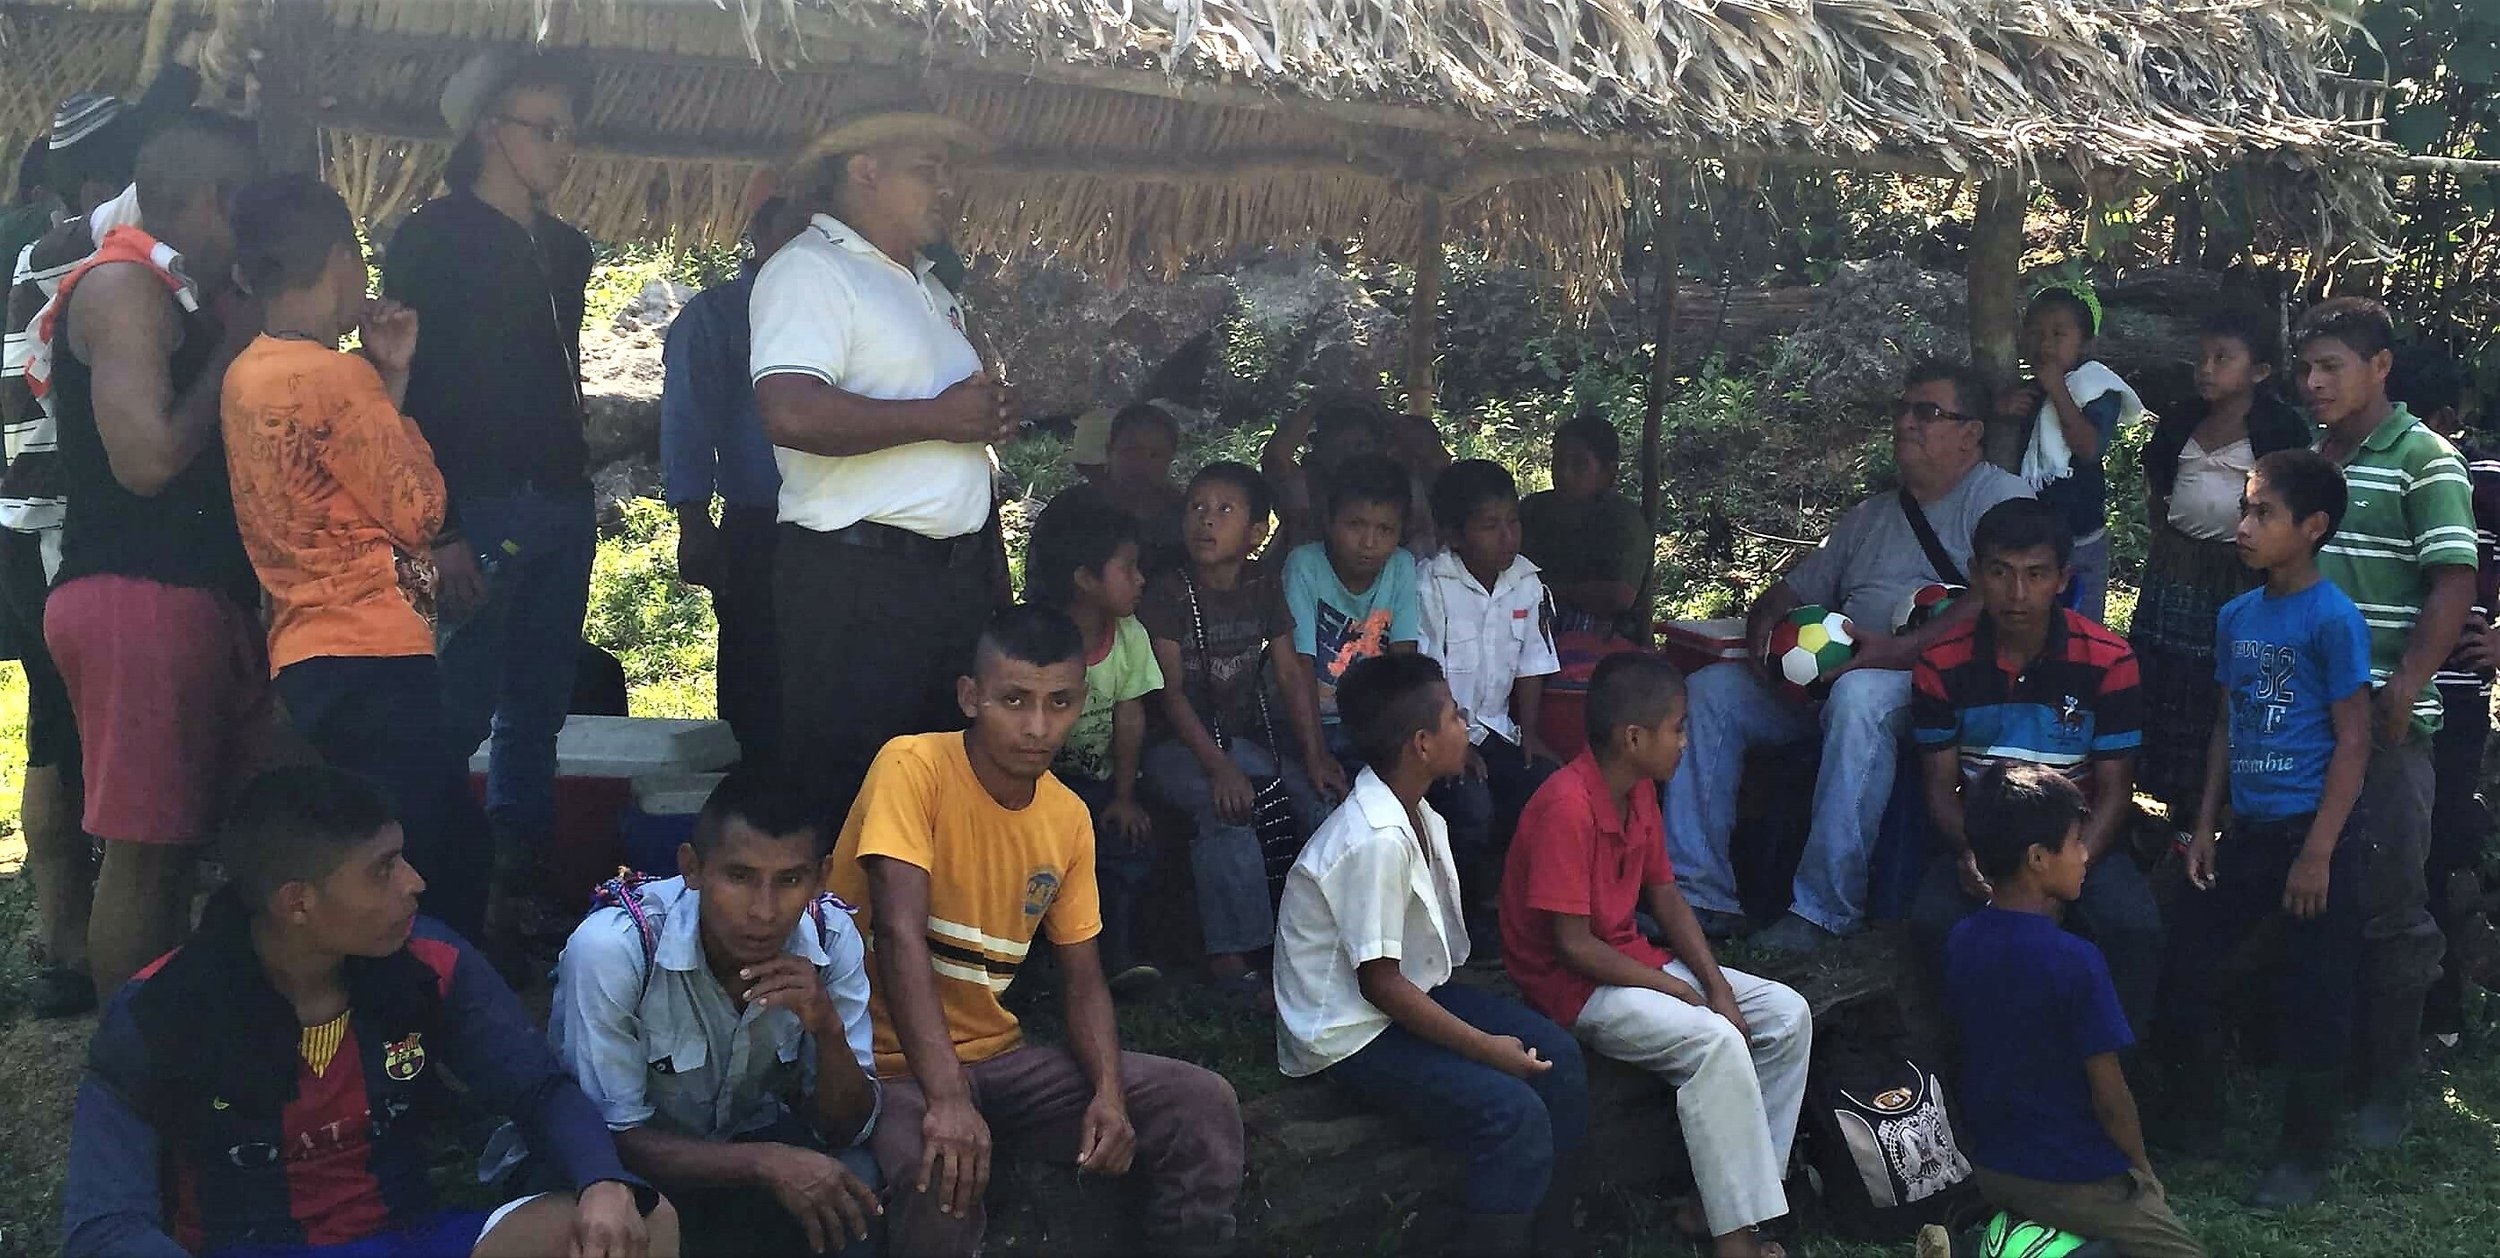 Jose (in the white shirt), pastor of the church in the village of Sepoc in the jungles of Guatemala, speaks to a group of soccer players after a tournament between four villages in March of 2016.